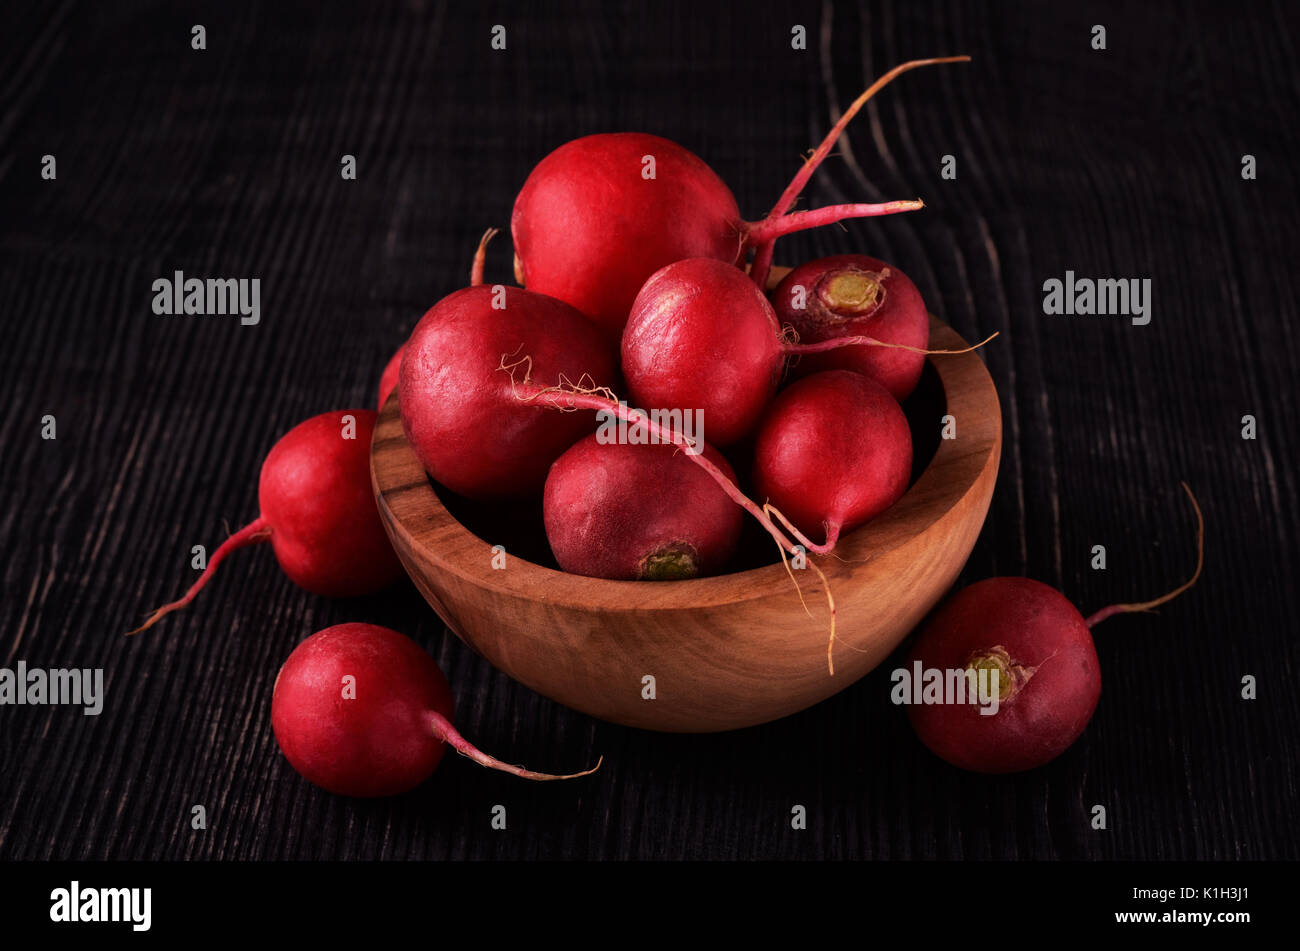 Organic red radish on dark in wood bowl wooden background - Stock Image